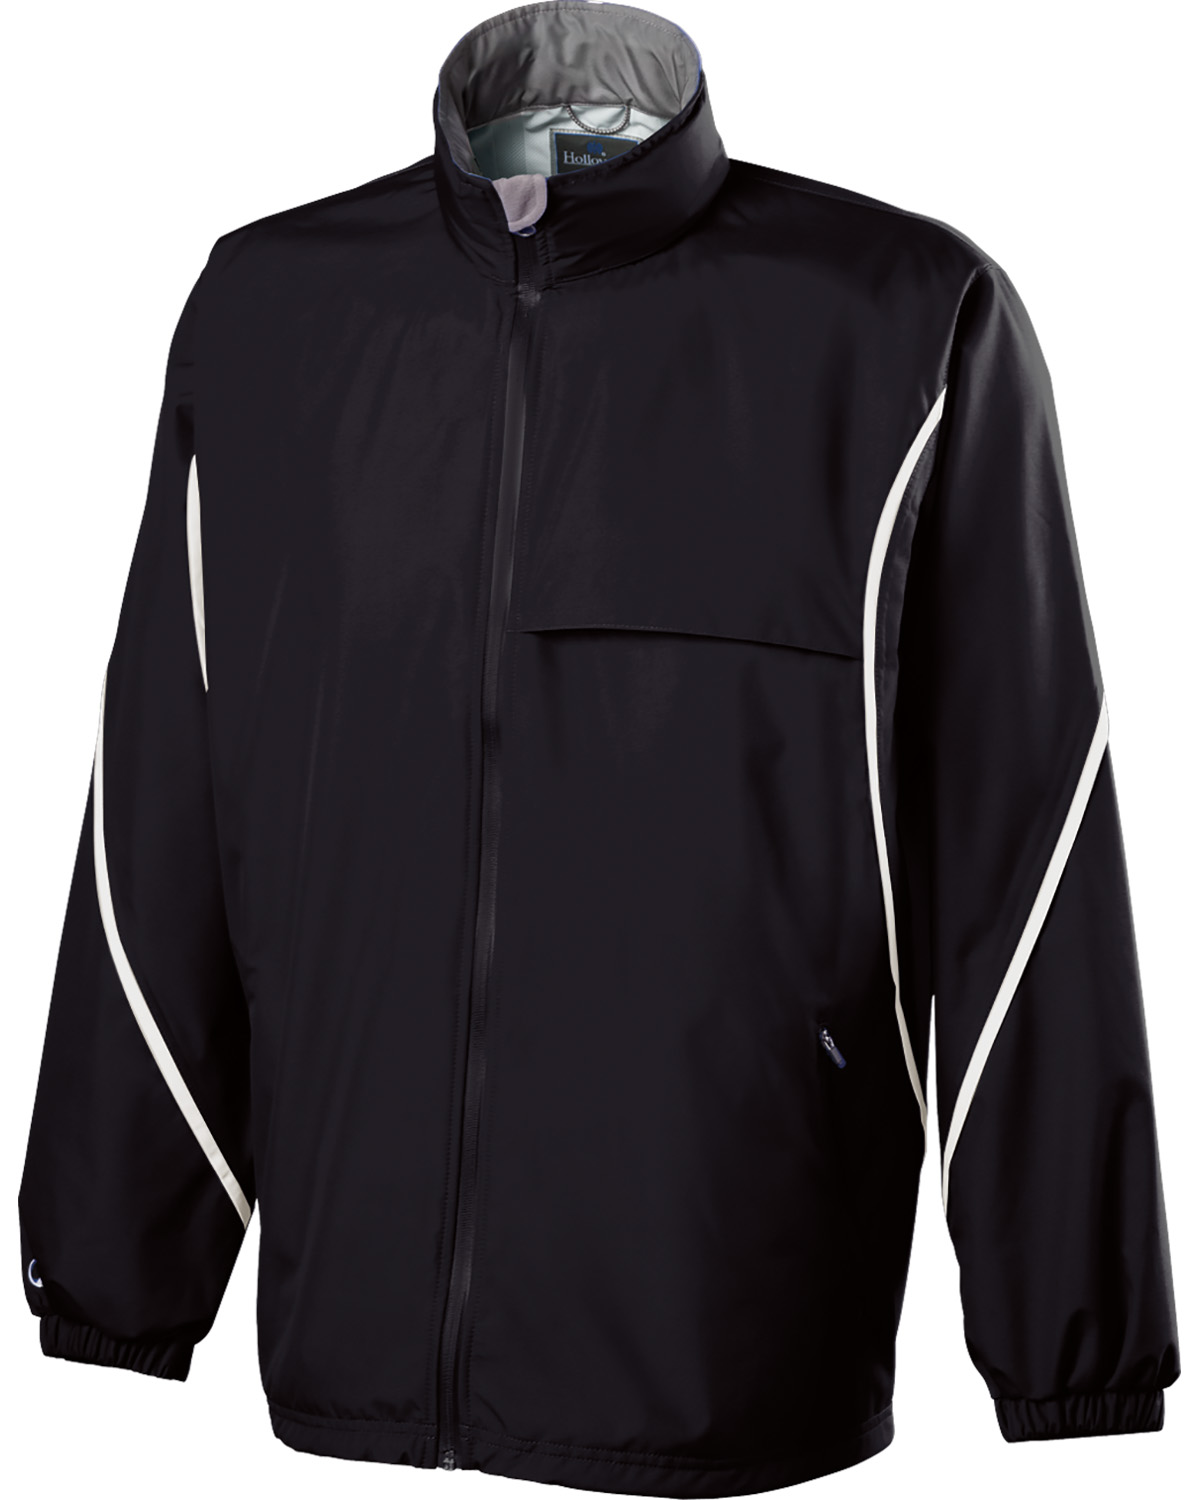 Holloway 229159 - Adult Polyester Full Zip Hooded Circulate Jacket